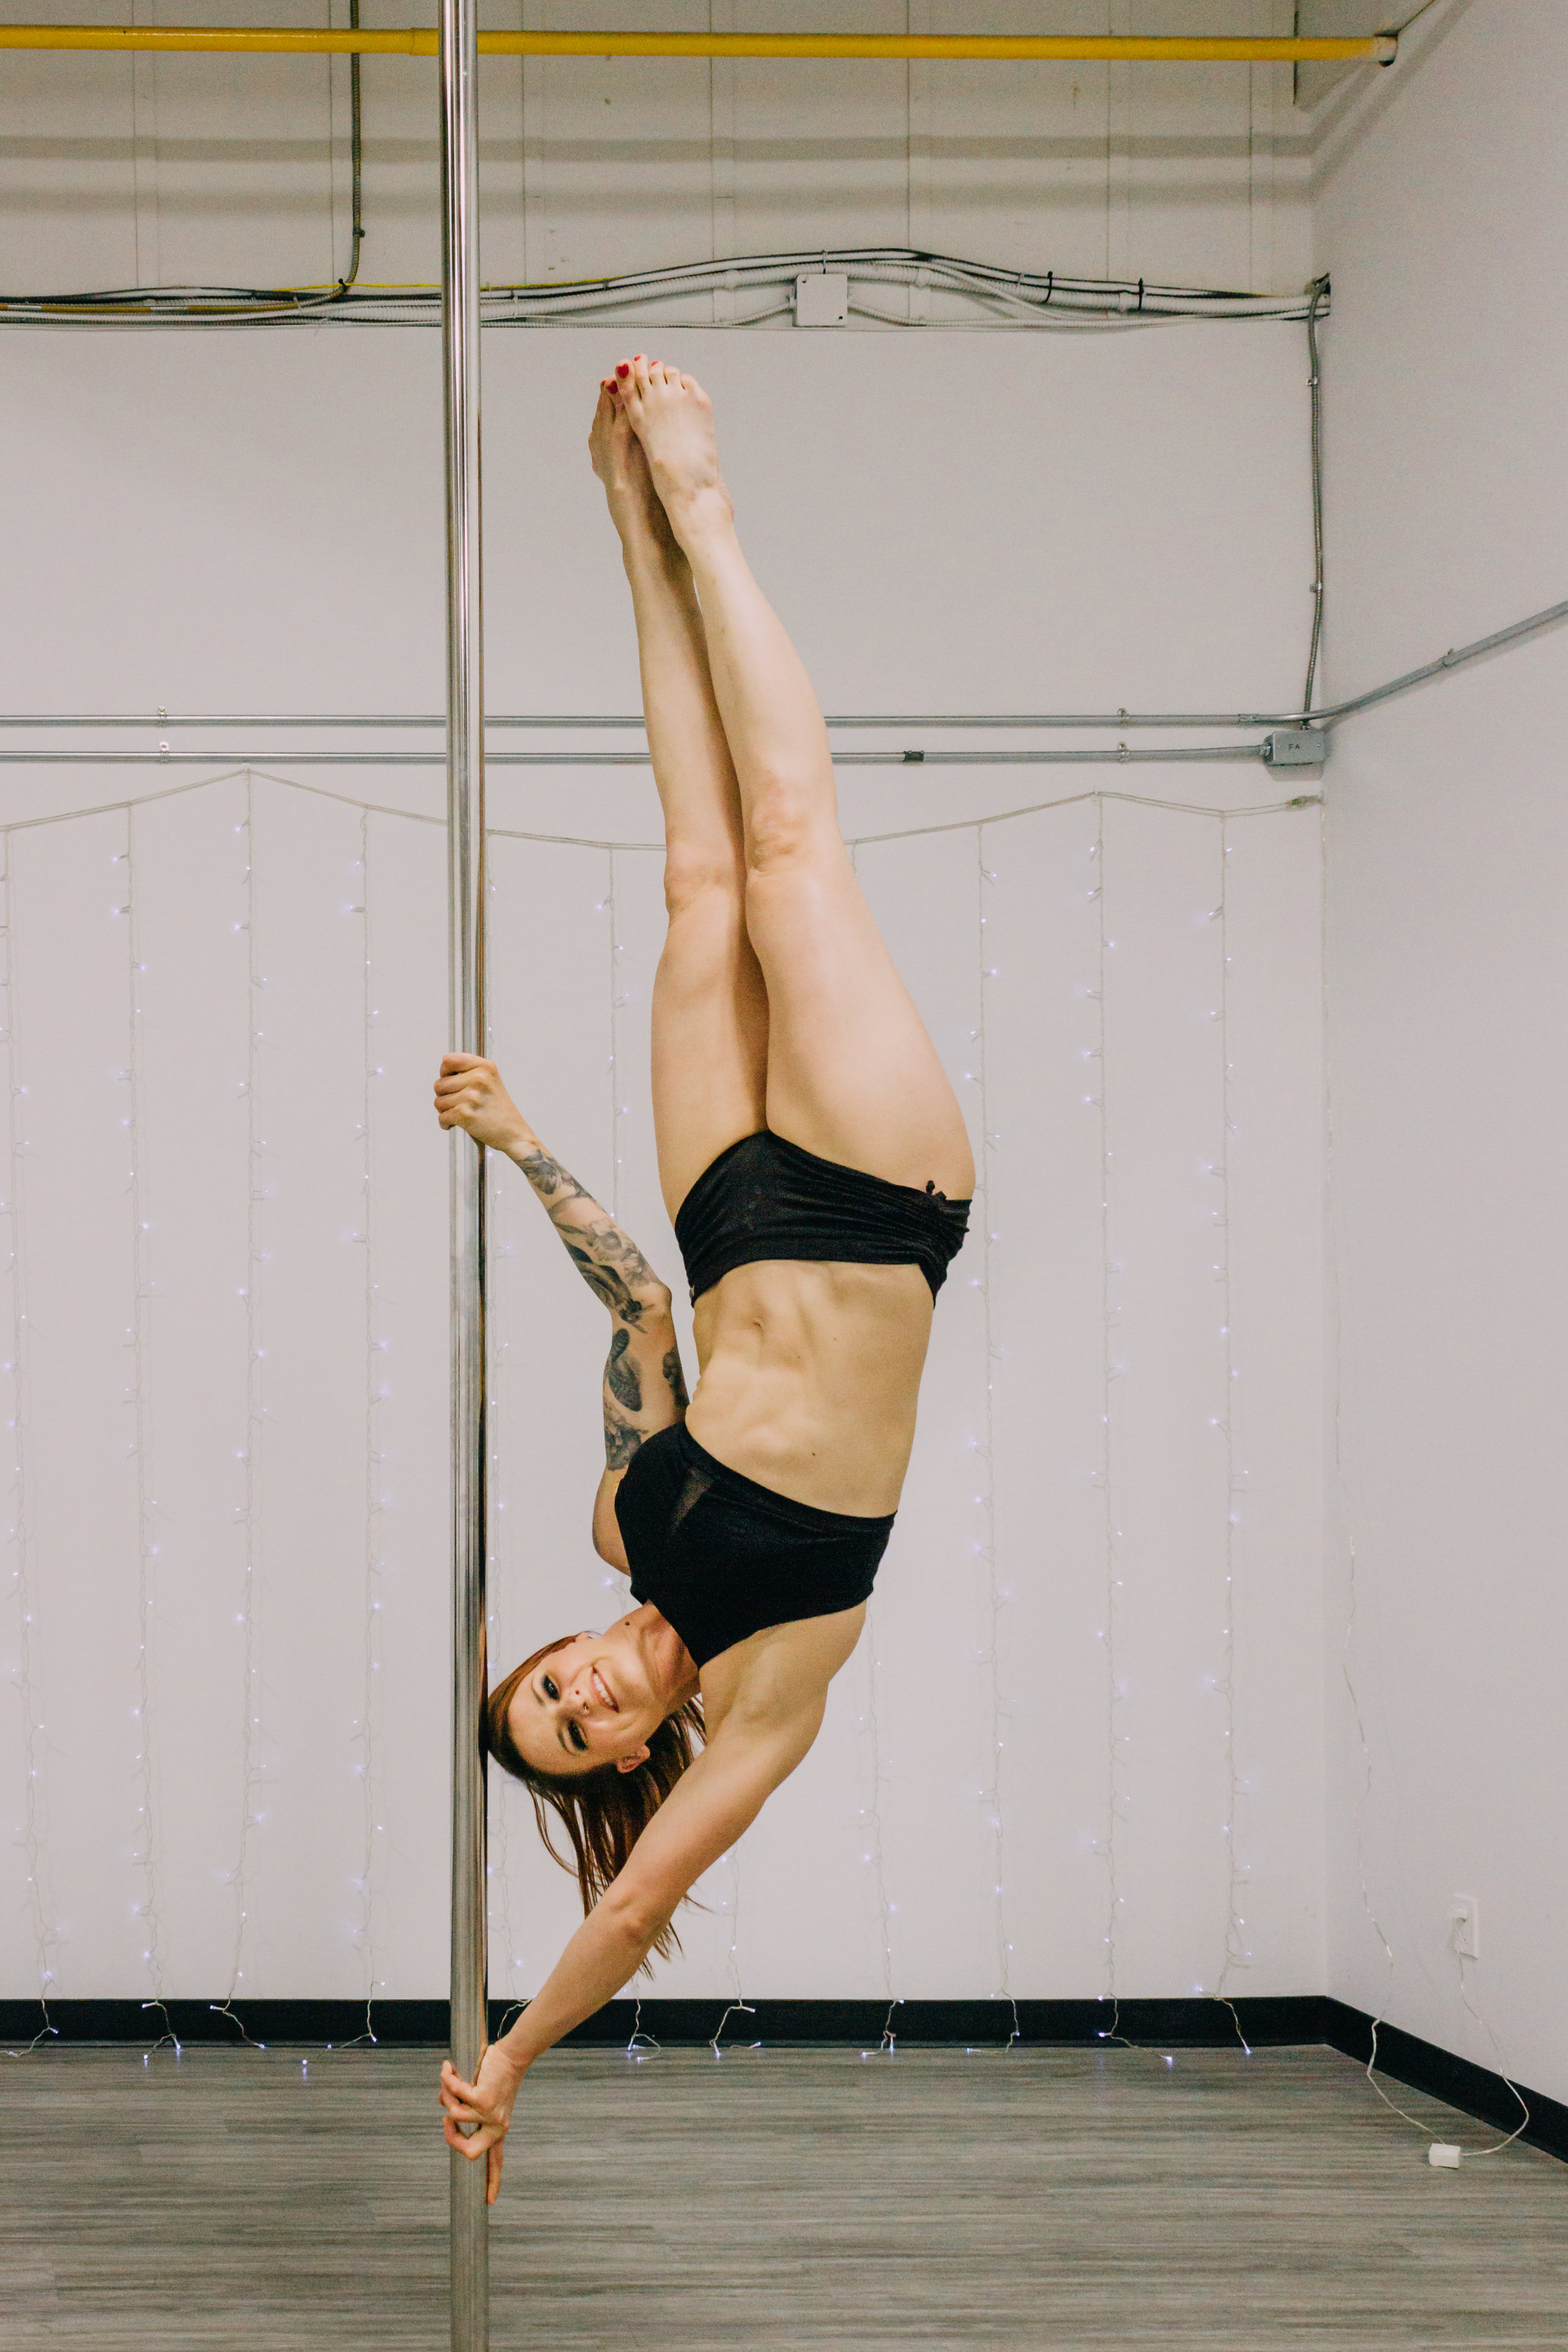 ADVANCED POLE FUNDAMENTALS - You may not register for this term without instructor approval. This term is for the advanced pole participant and requires a high level of strength & flexibility. We want you to feel successful throughout your pole experience, therefore you will be required to speak with your Pre-Advance 2 instructor prior to registering for this term.